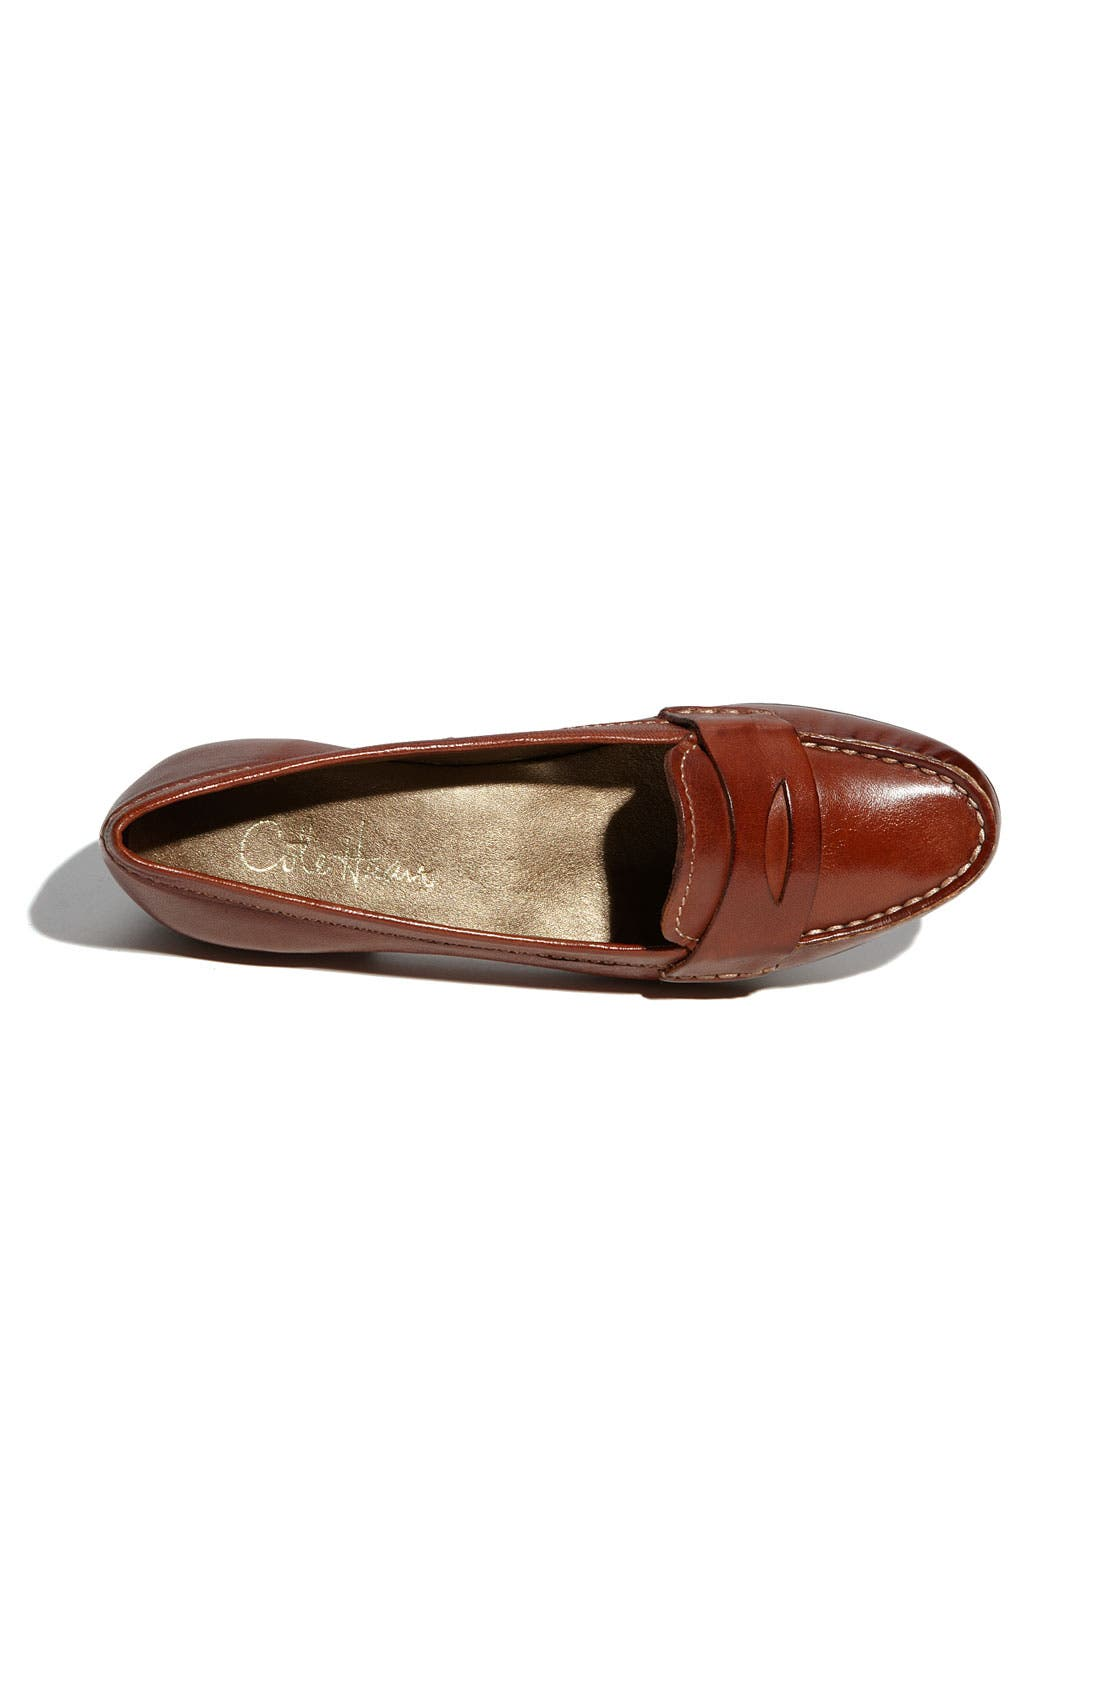 Alternate Image 3  - Cole Haan 'Air Sloane' Leather Loafer